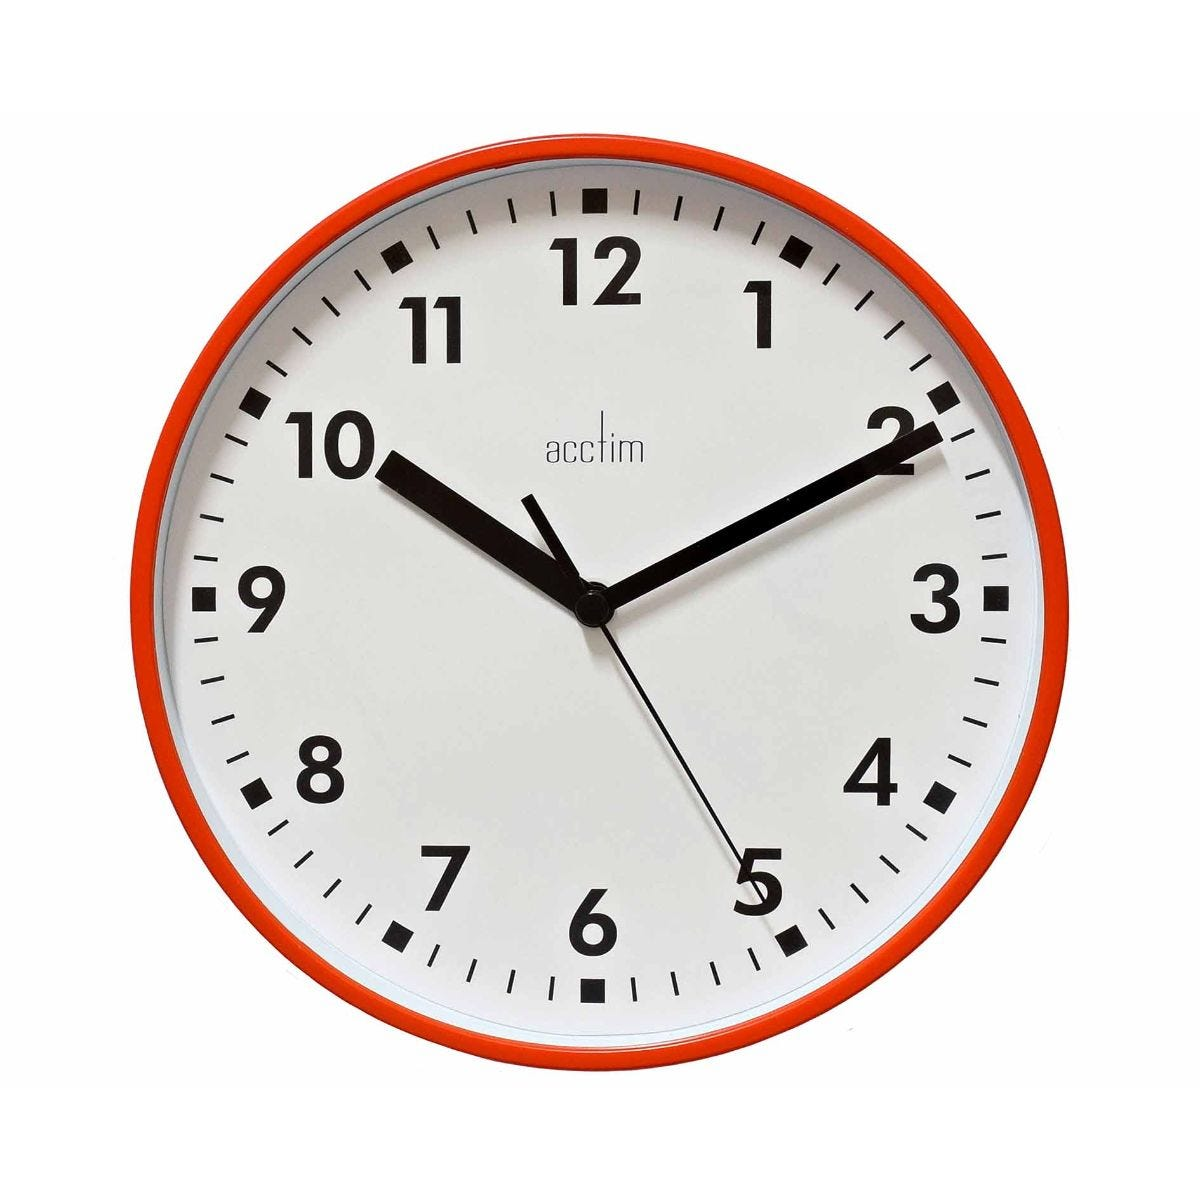 Image of Acctim Wickford Wall Clock, Bus Red